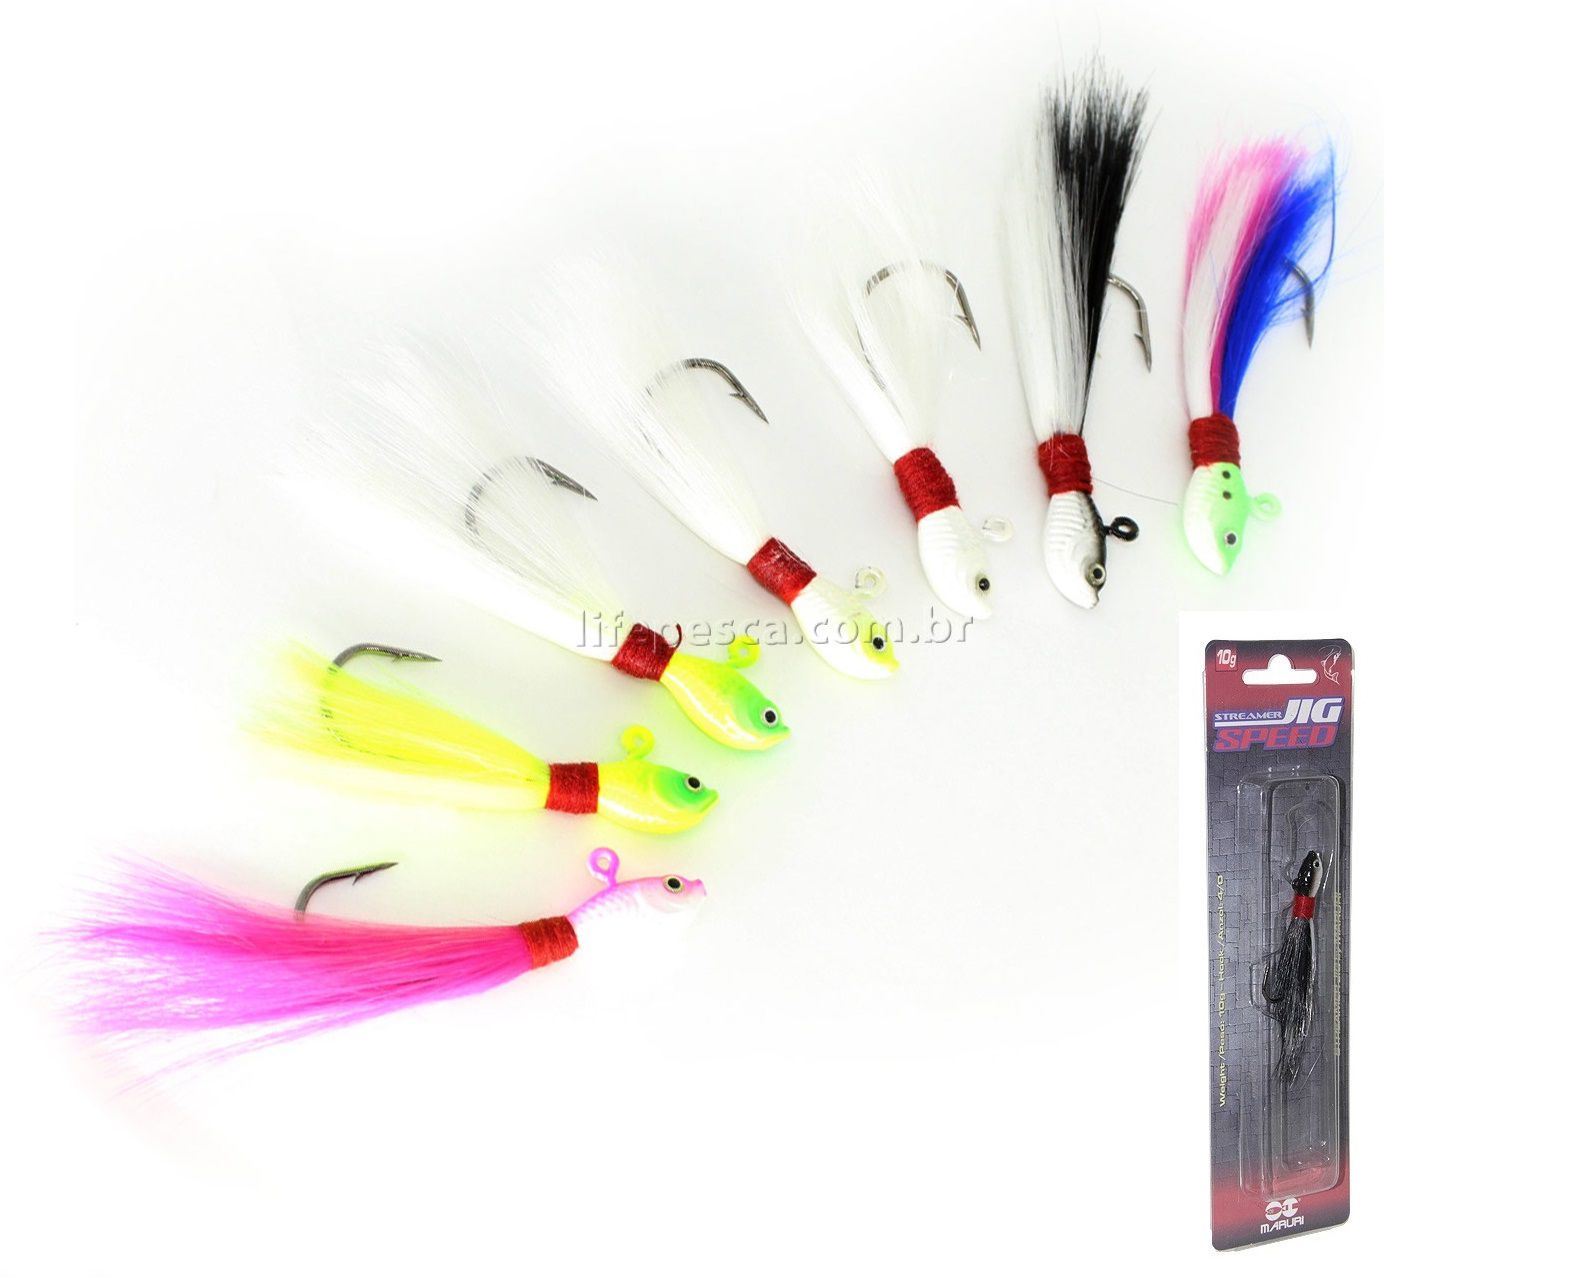 Isca Artificial Maruri Streamer Jig Speed - 15gr ( Várias Cores )